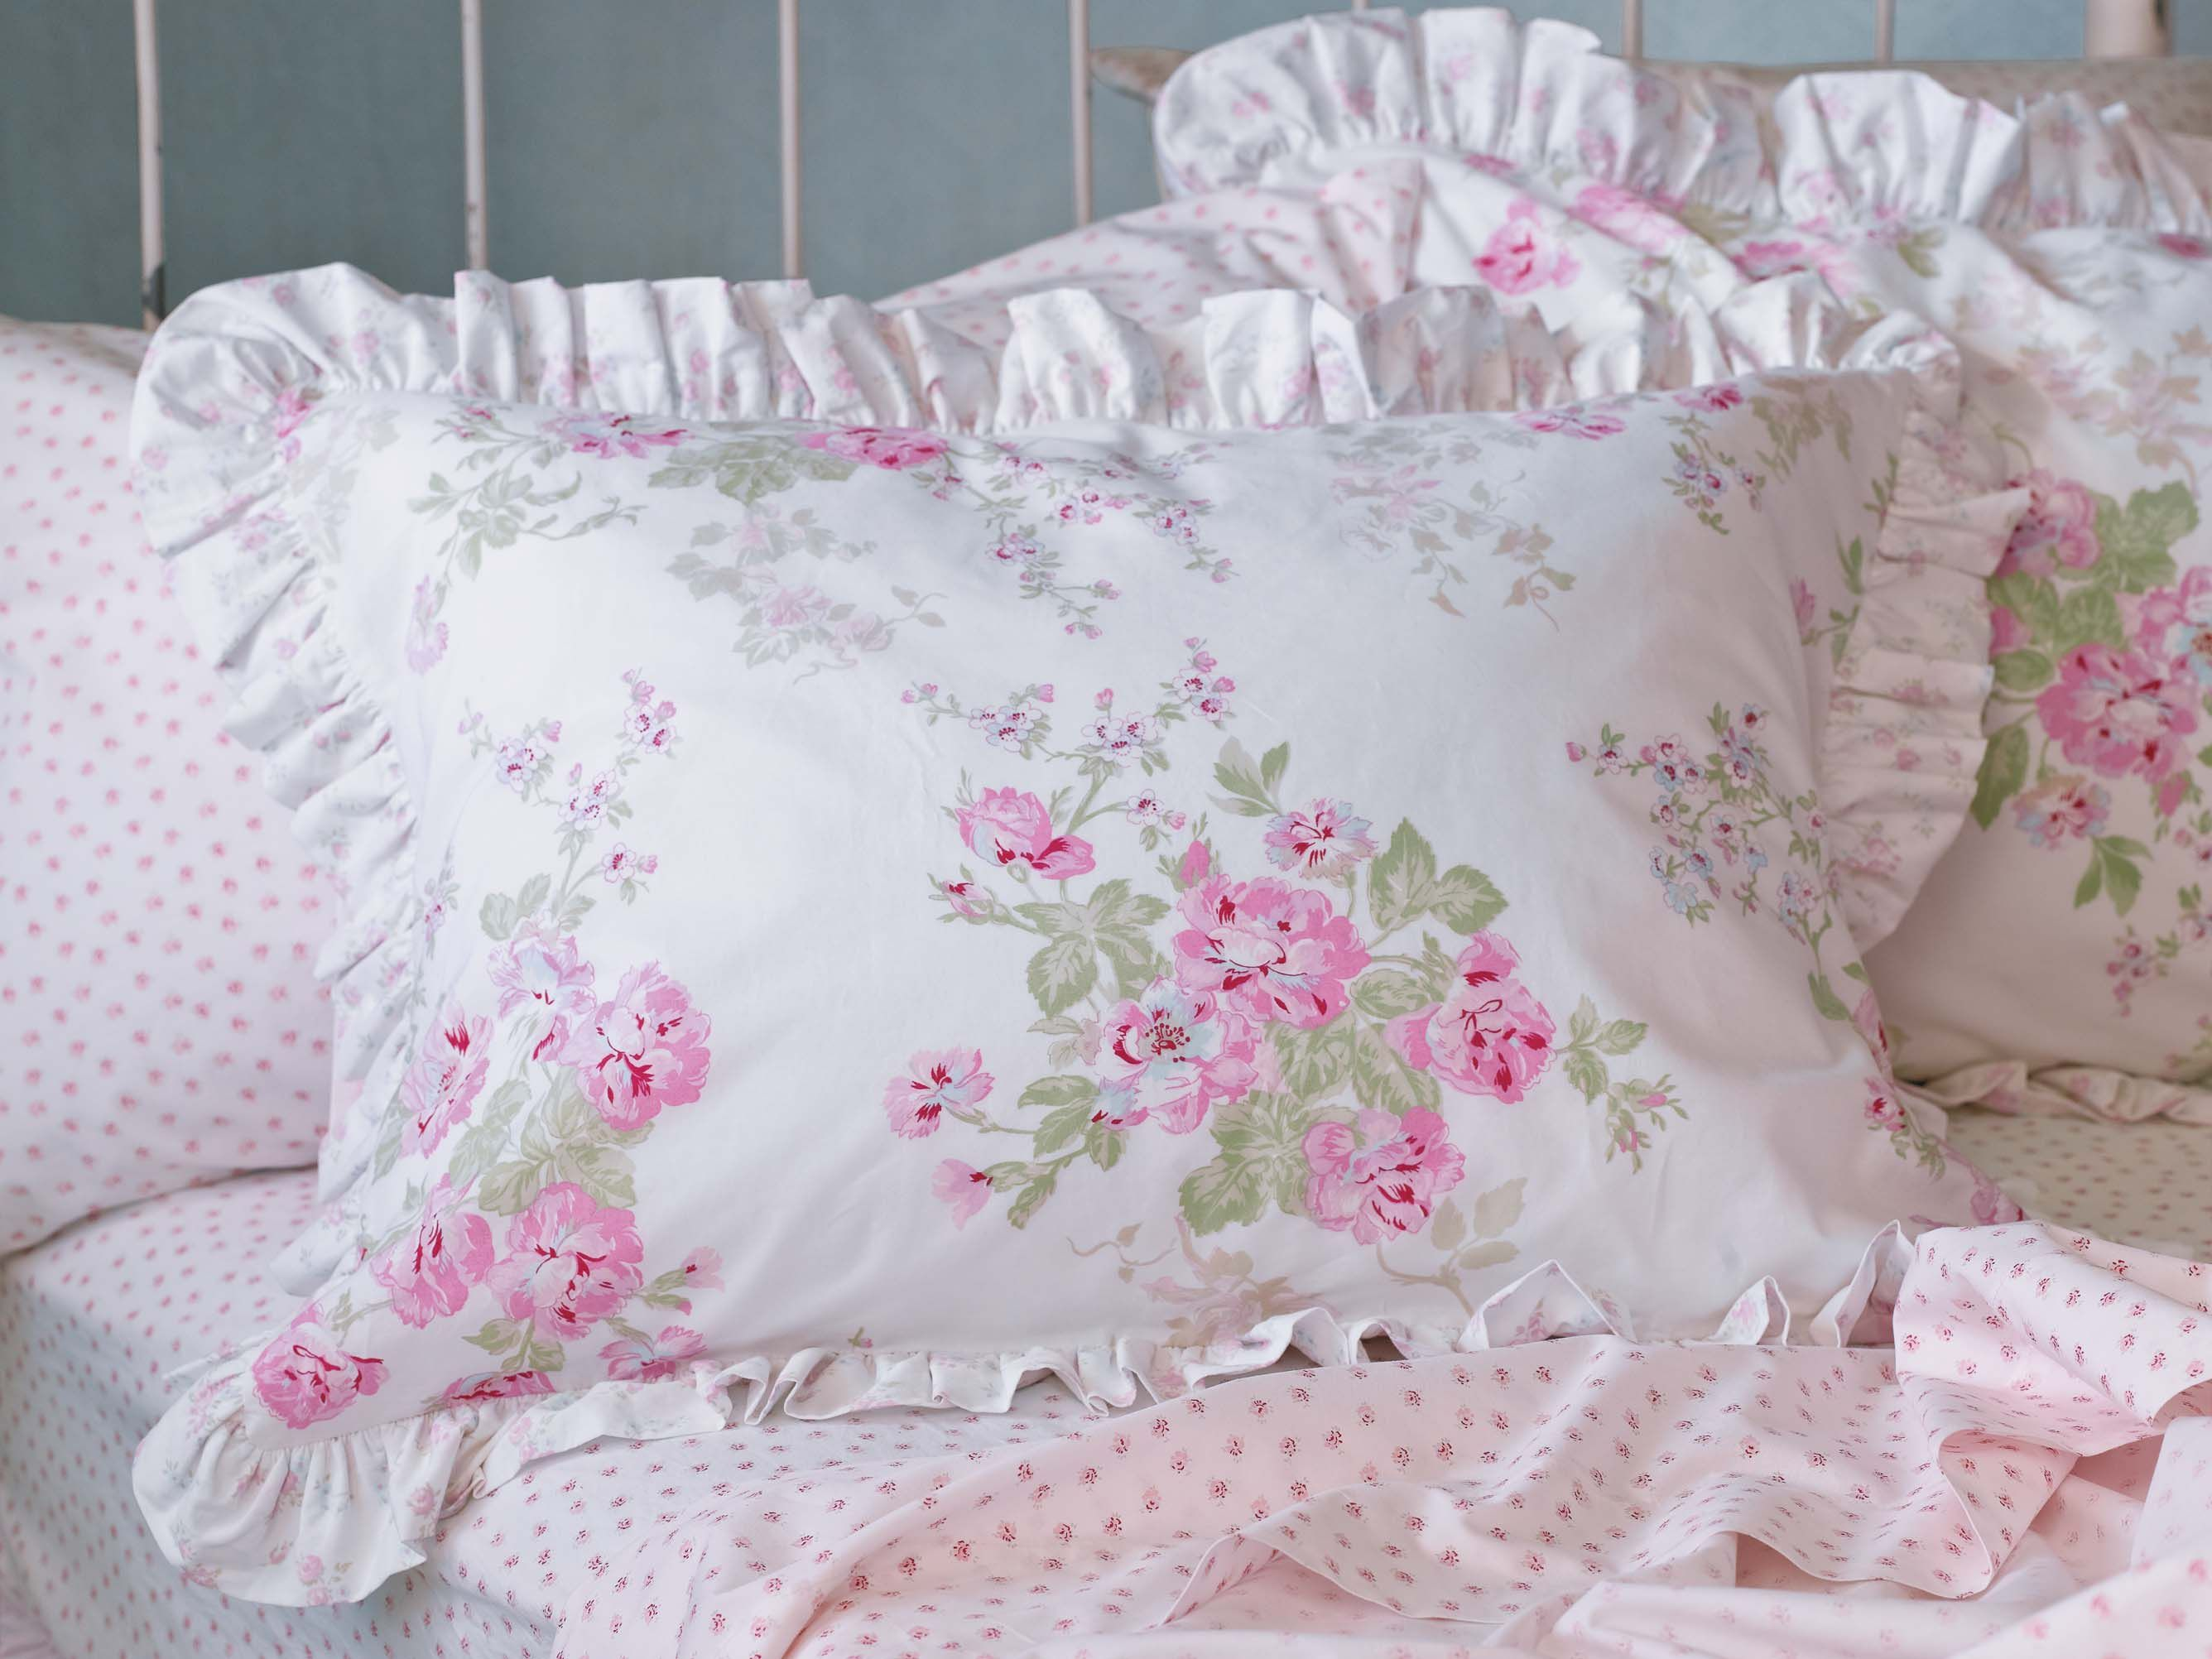 Simply Shabby Chic Pillows : Simply Shabby Chic Essex Floral Bedding at #Target Simply Shabby Chic Pinterest Simply ...